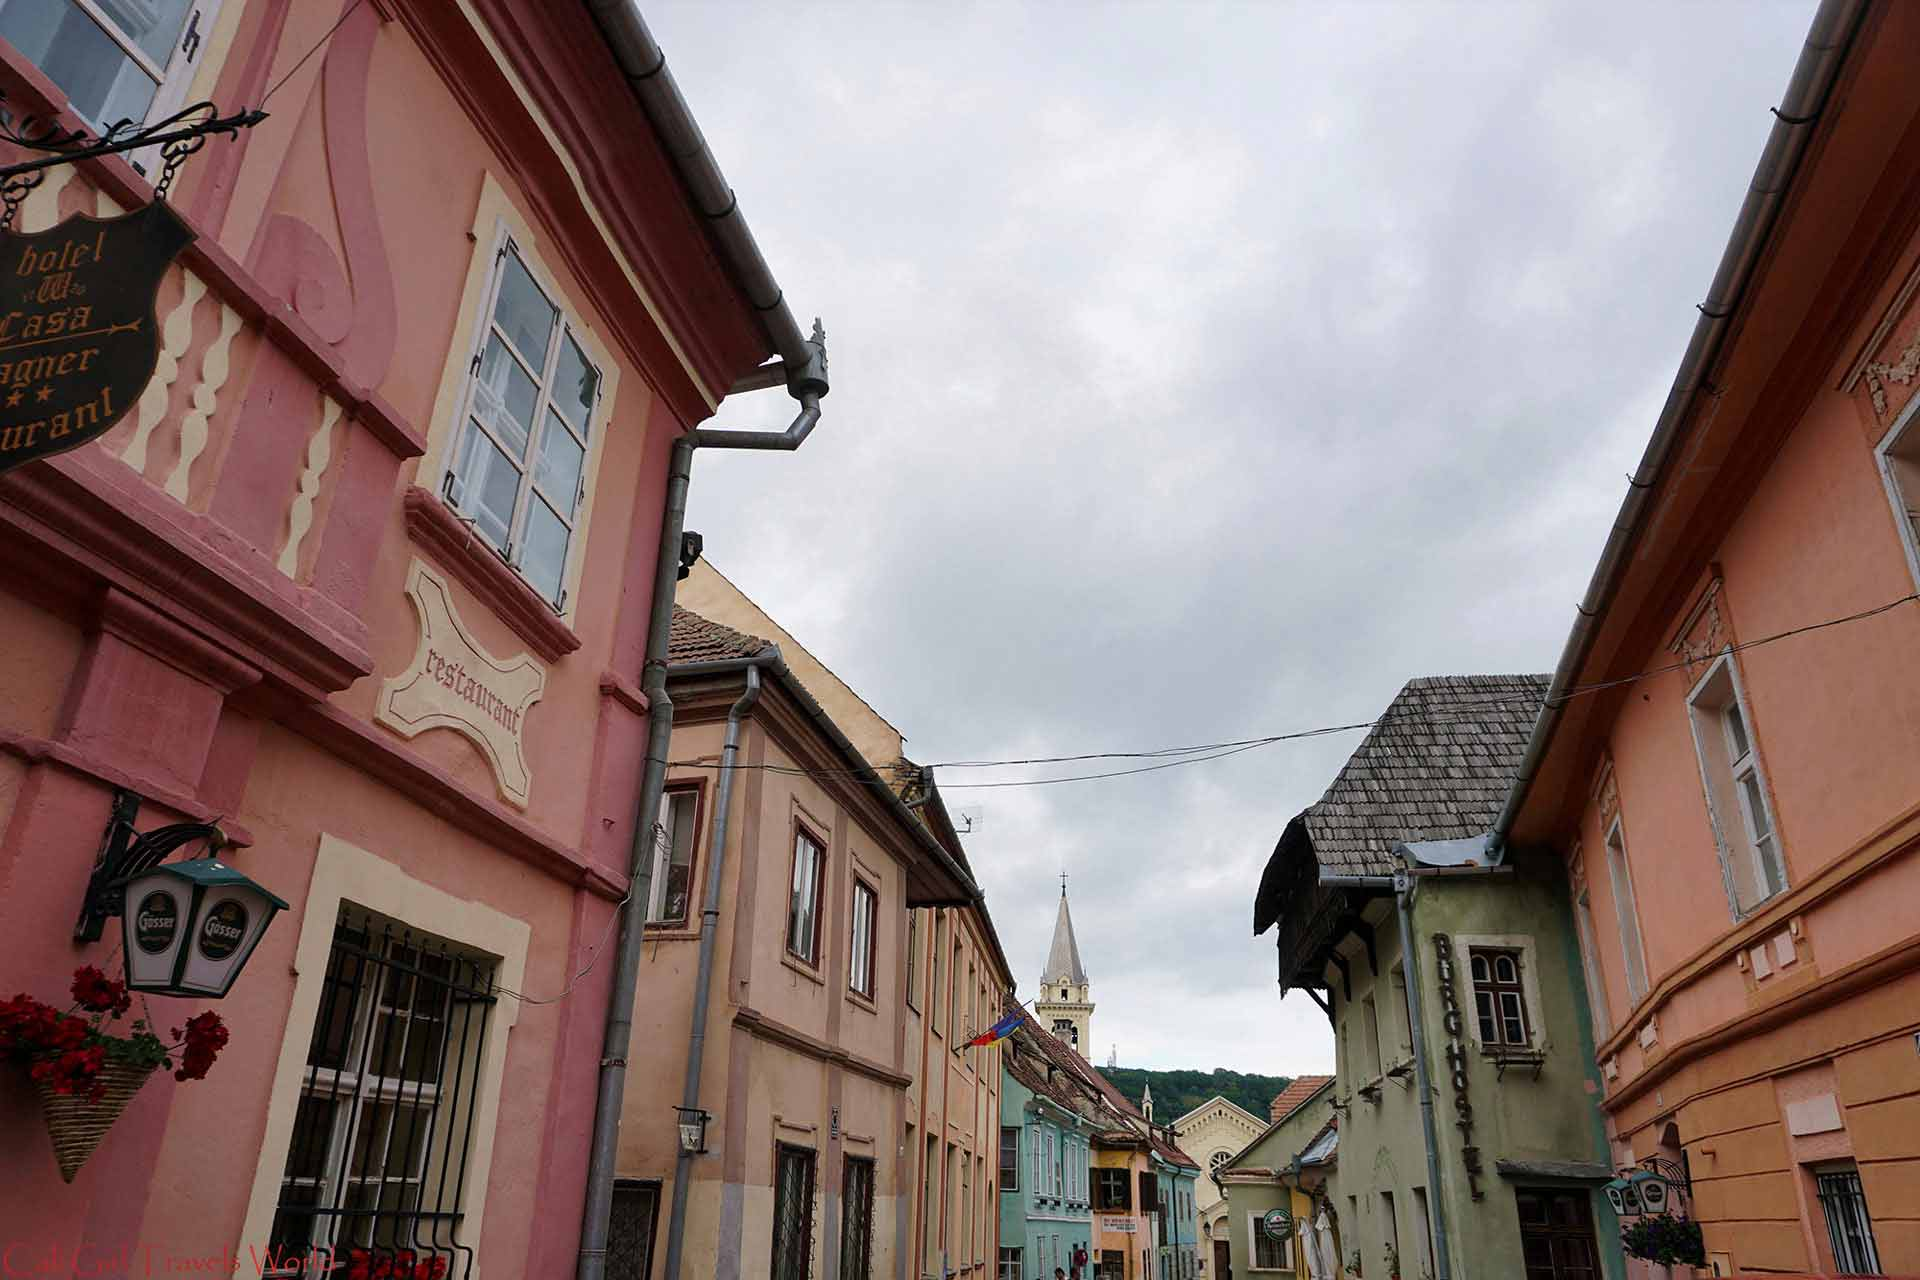 Colorful homes of a medieval cobbled street in Sighisoara, Romania, Transylvania.